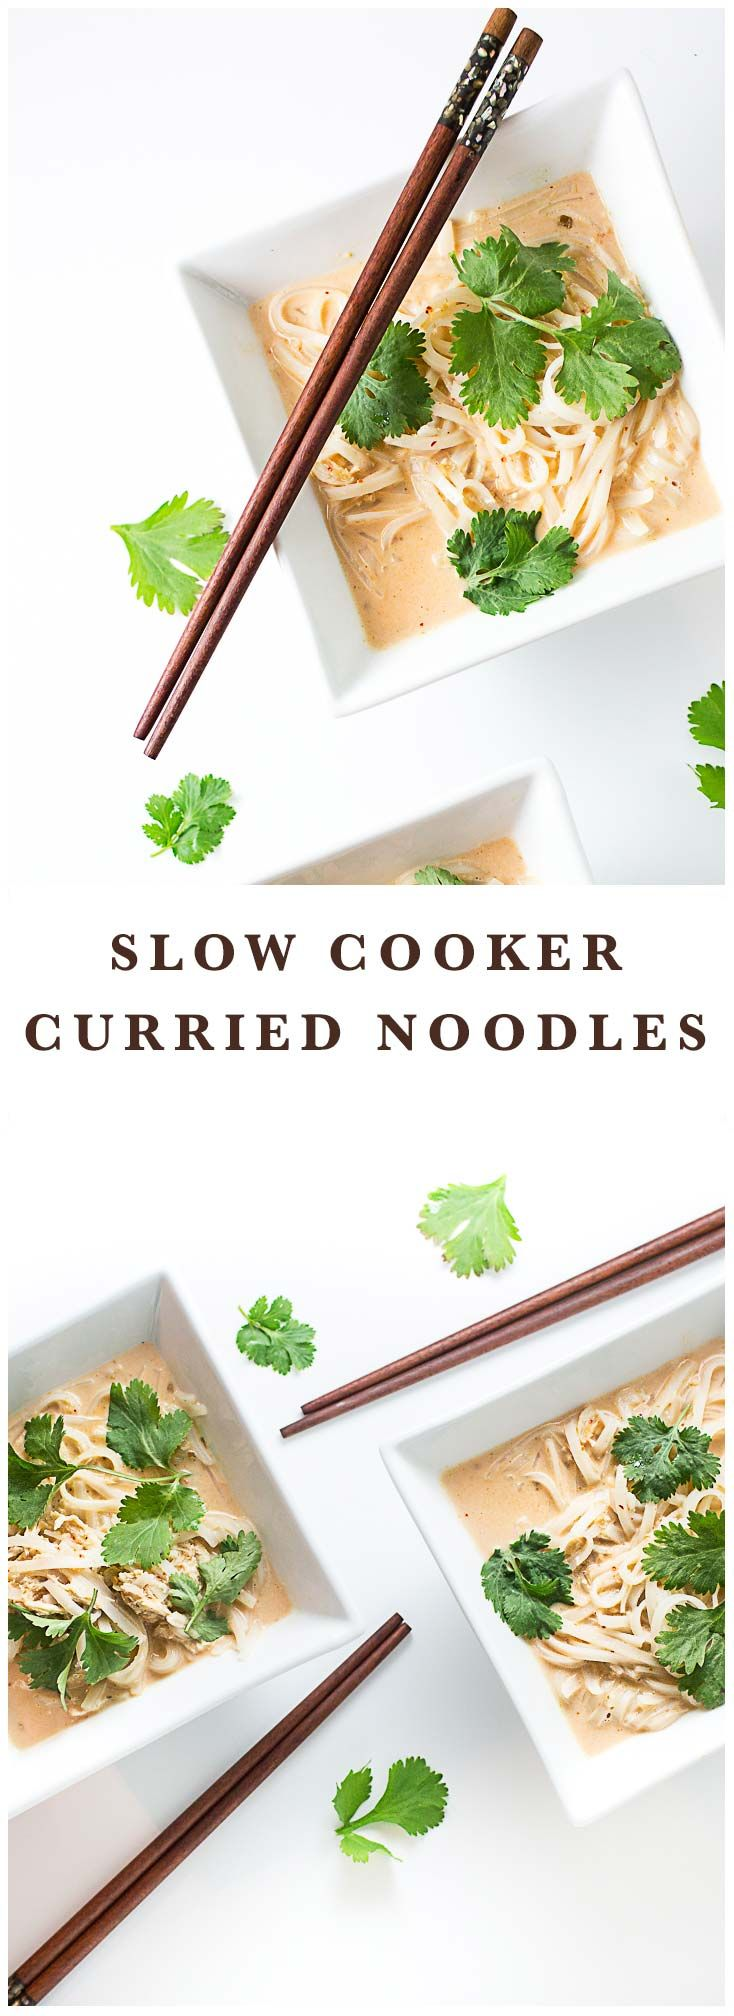 Slow Cooker Thai Curried Noodles - all made so easy in the slow cooker!  #slowcooker #noodles #thai